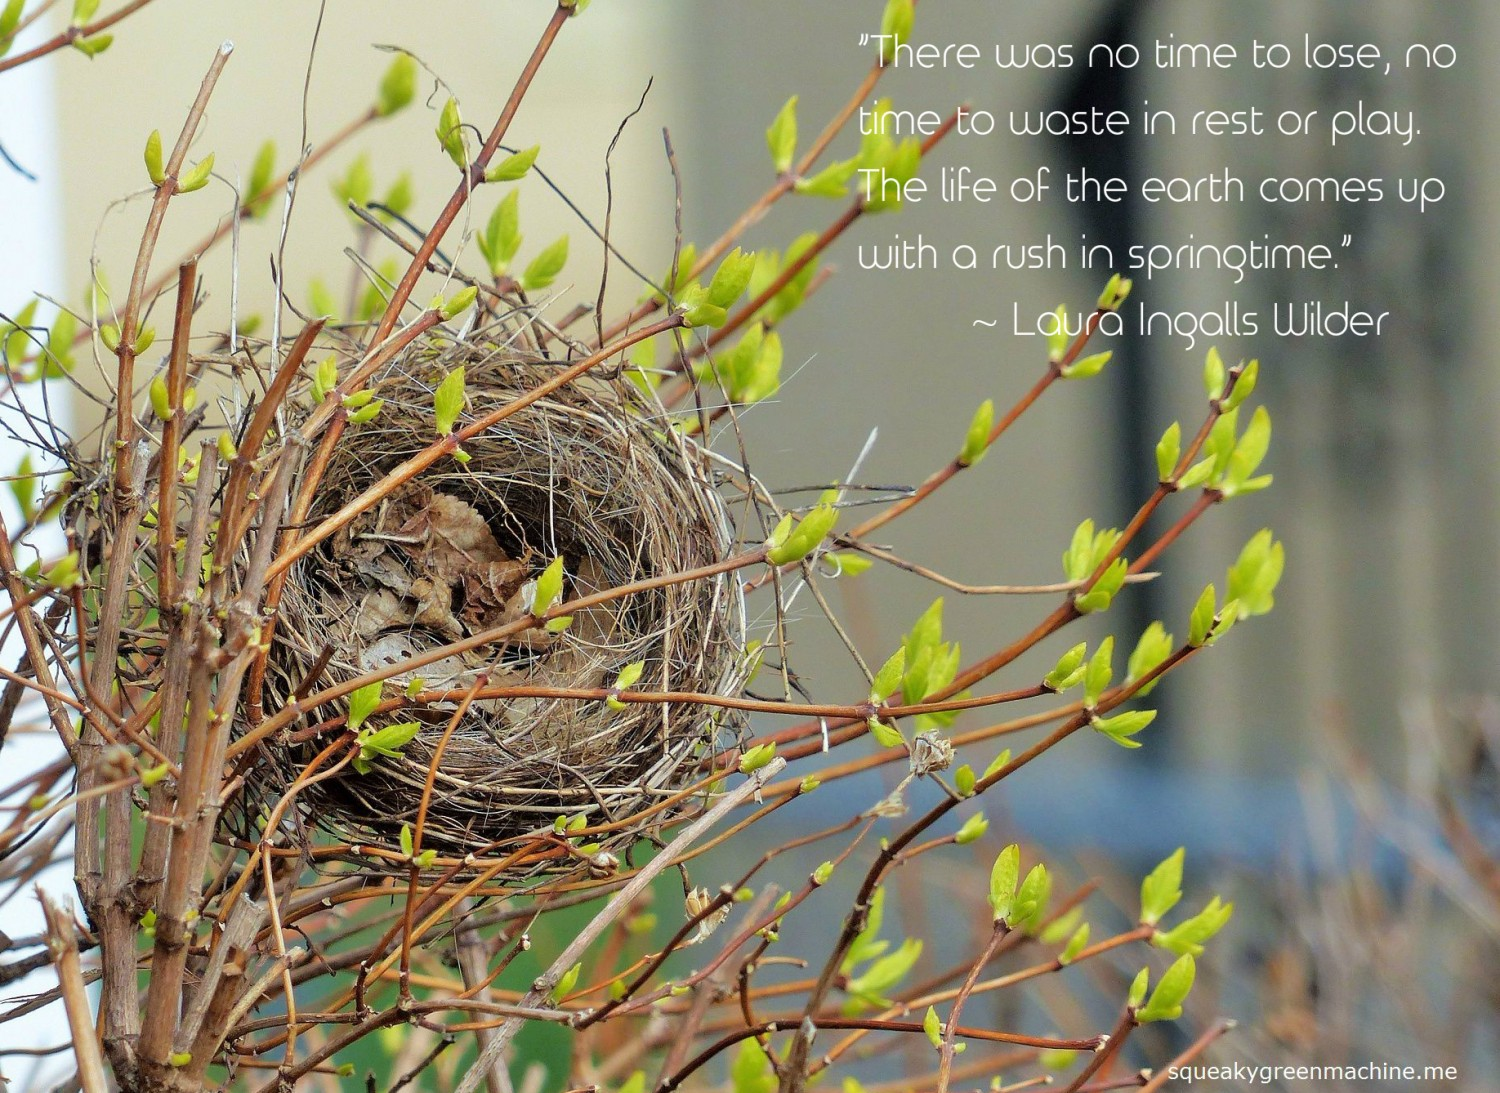 "a bird's nest nestled between spring buds with the laura ingalls wilder quote: ""There was no time to lose, no time to waste in rest or play. The life of the earth comes up with a rush in springtime."